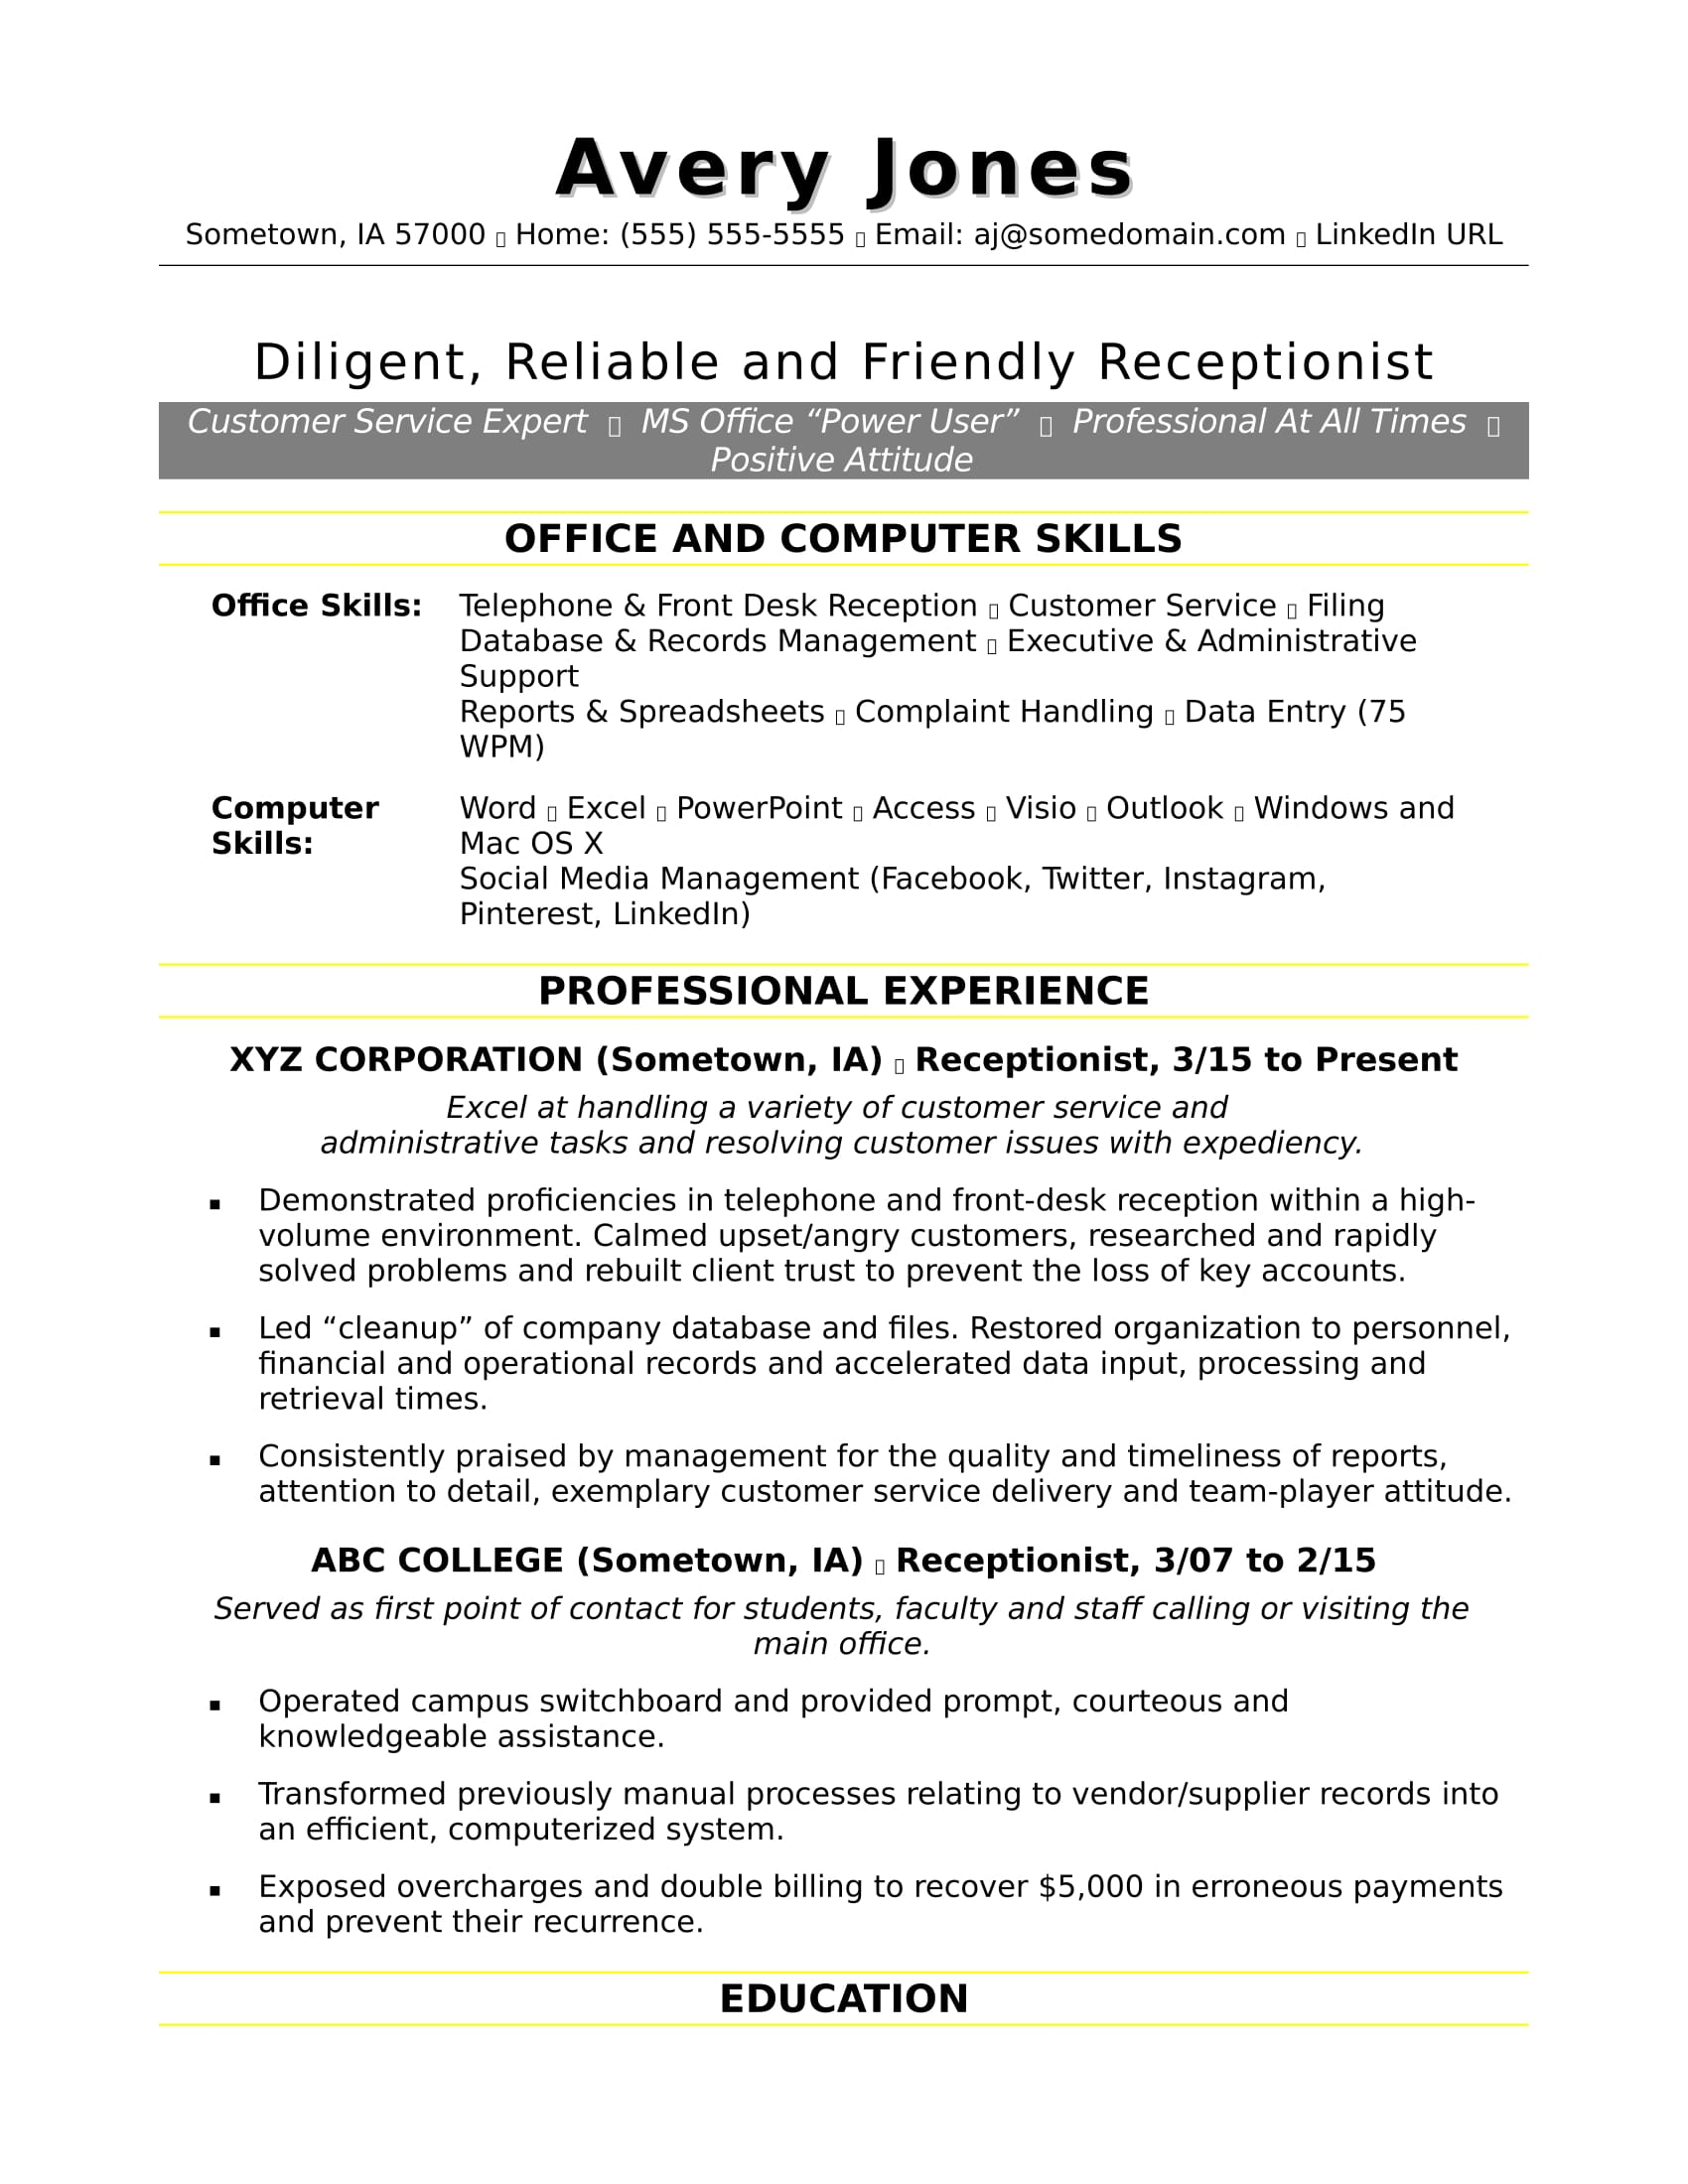 Amazing Sample Resume For A Receptionist Idea Resume For Receptionist